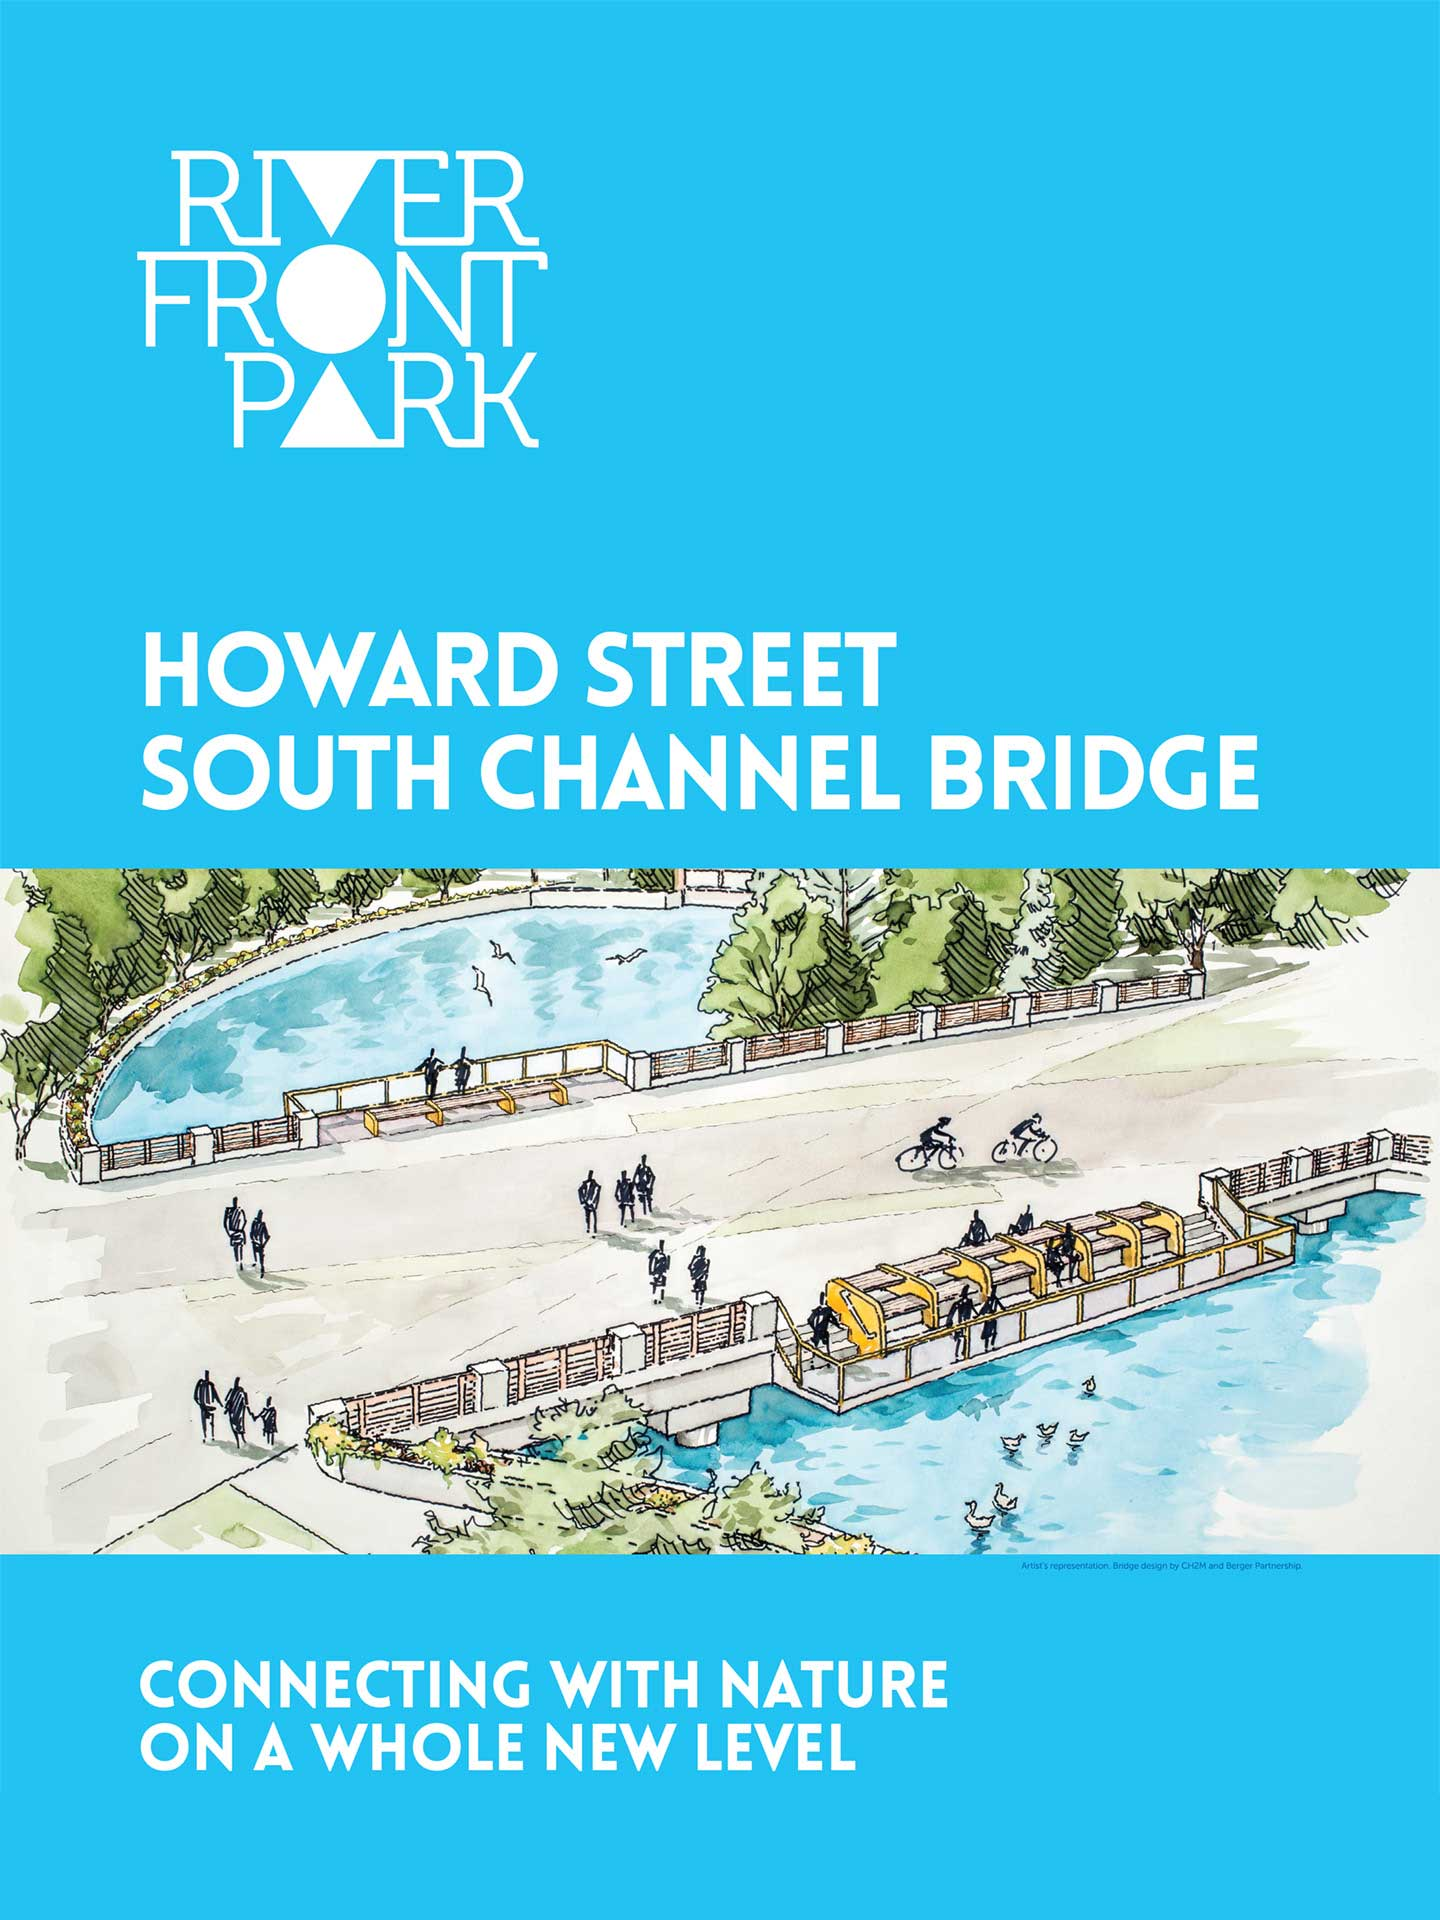 Howard Street South Channel Bridge Banner